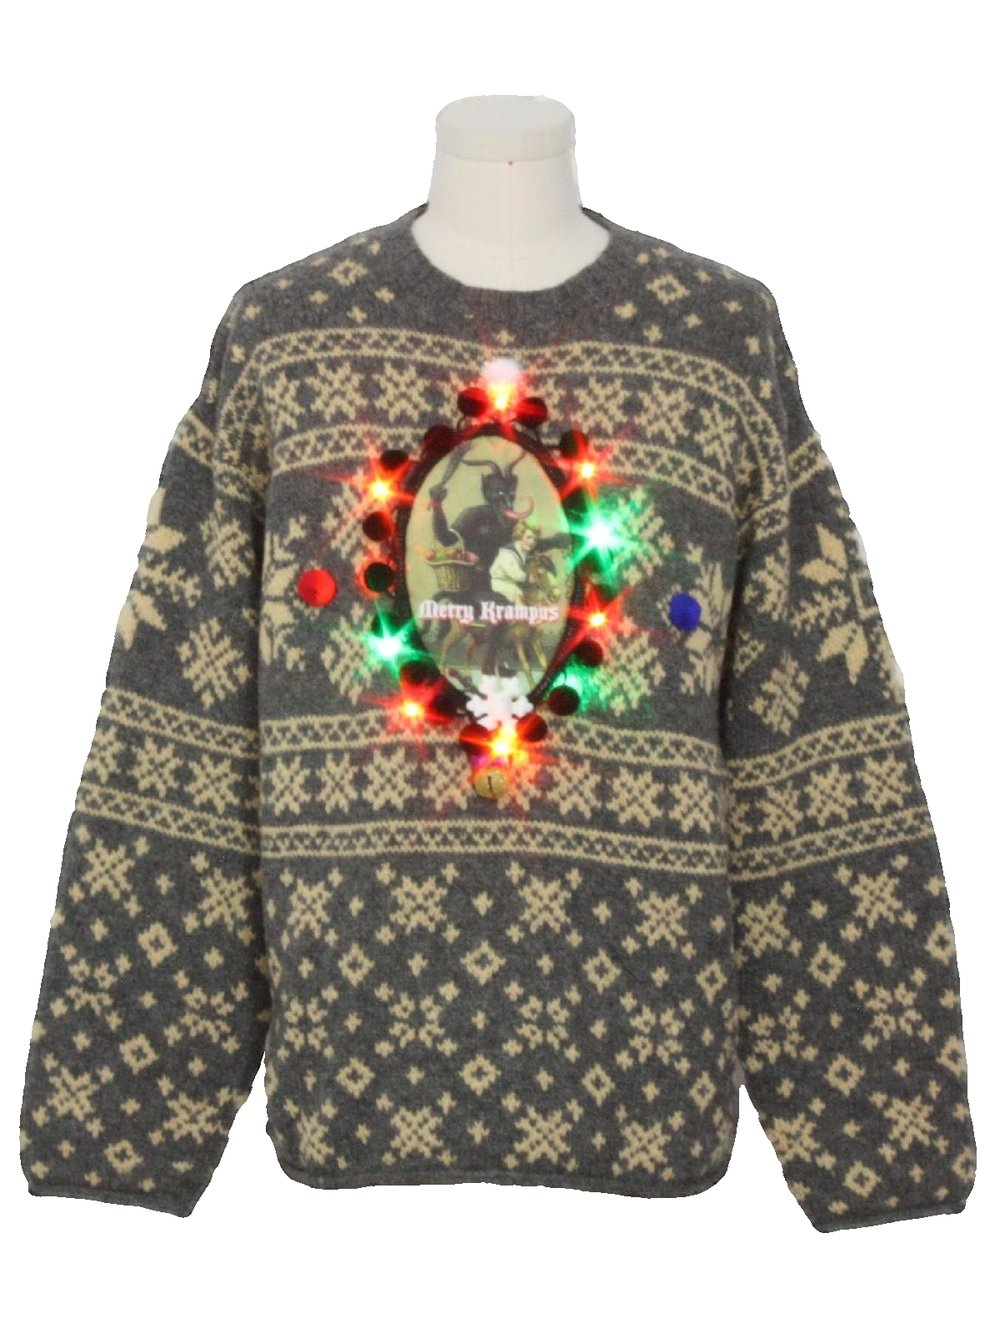 The only thing worse than this ugly Krampus sweater is paying $69.00 for this ugly Krampus sweater. -